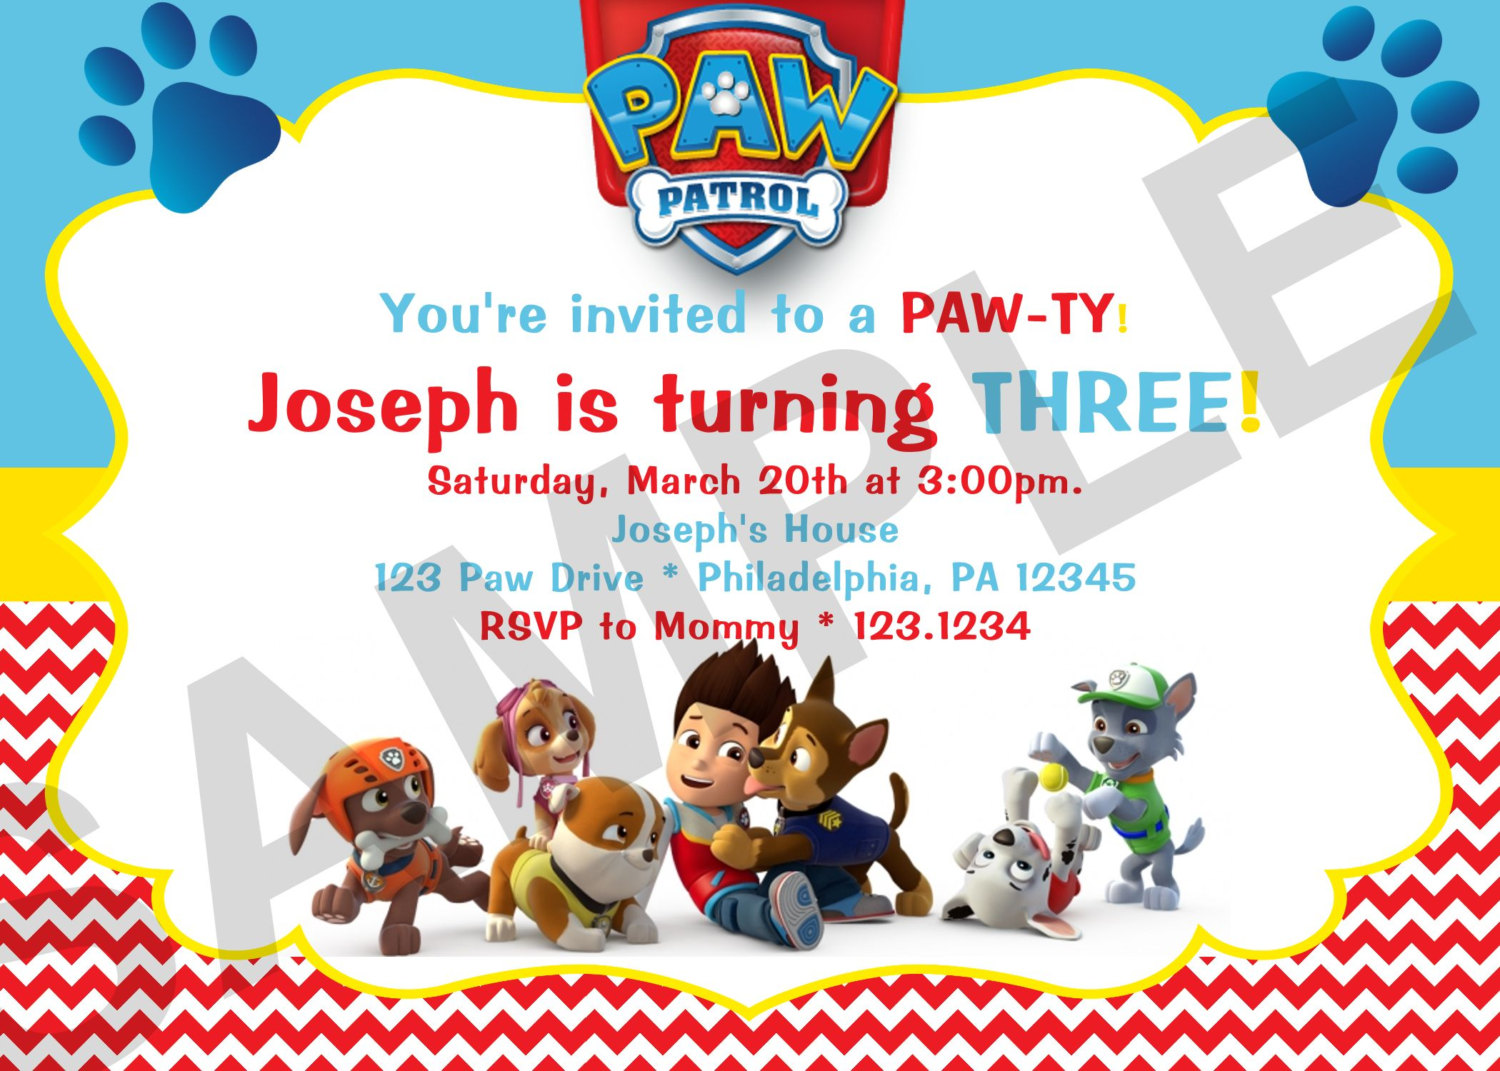 paw patrol birthday design ; paw-patrol-birthday-party-invitations-for-complete-your-Birthday-Invitation-with-comely-design-13